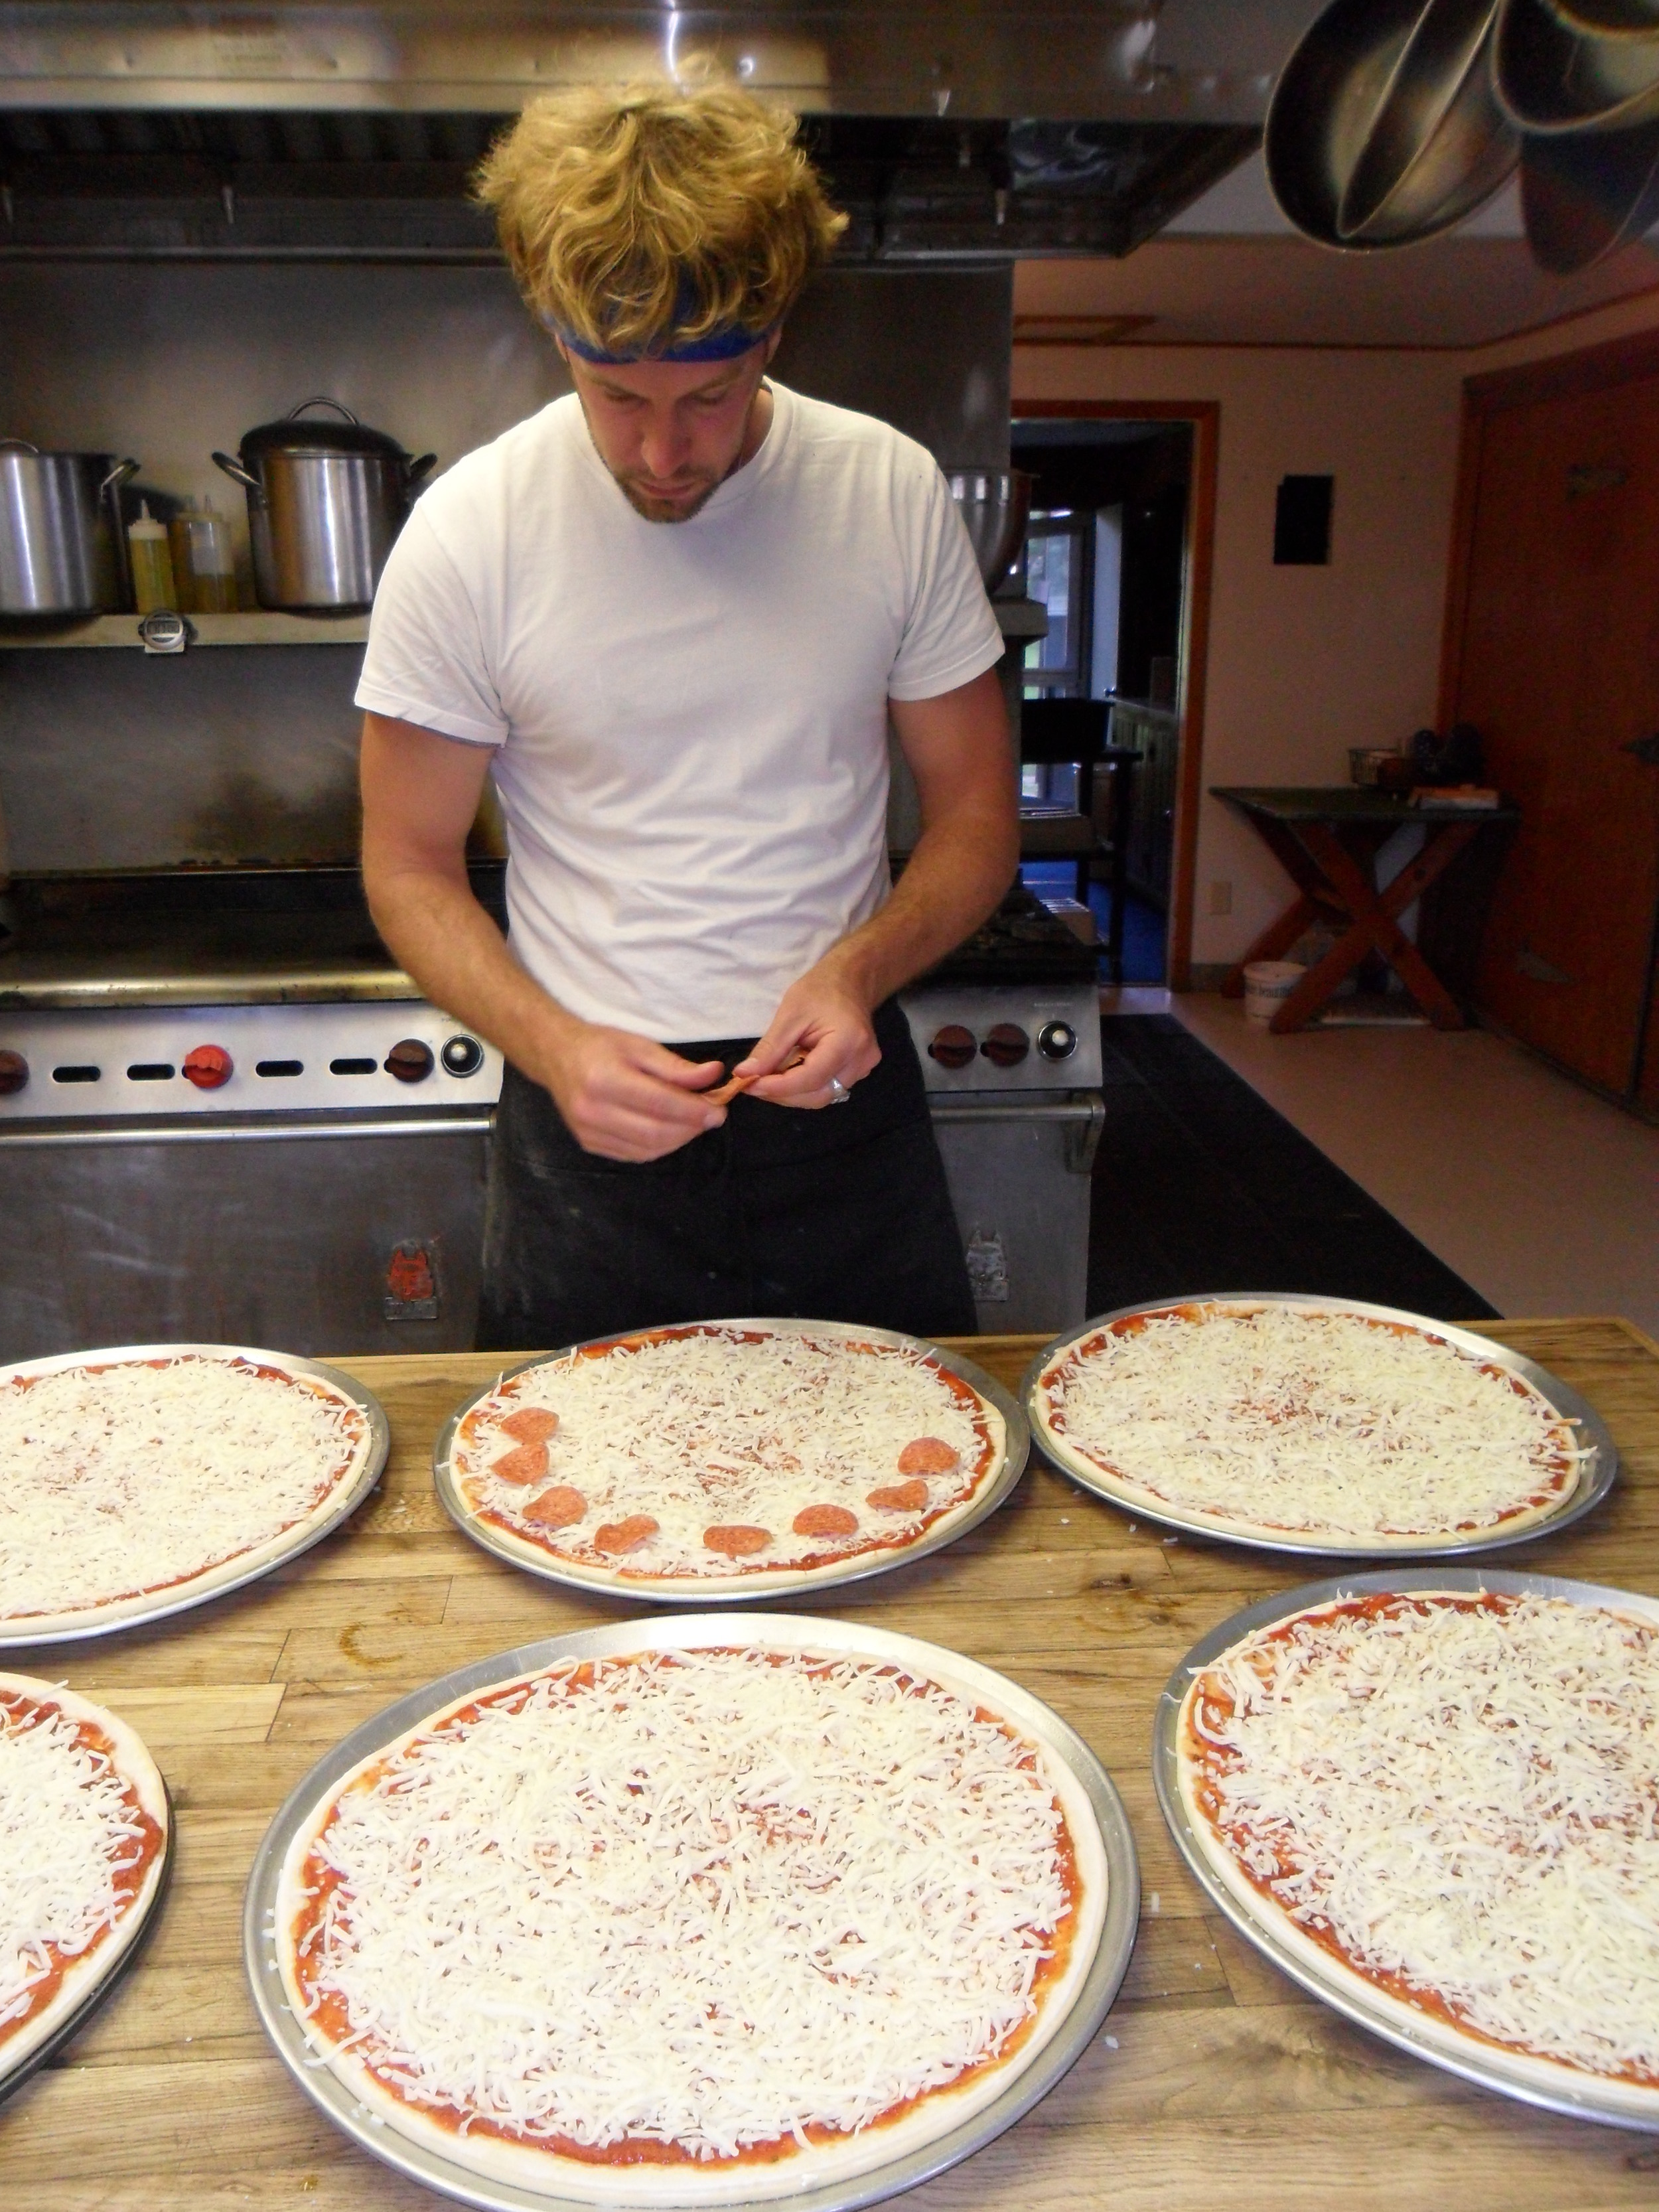 Making pizzas for The City Kids Wilderness Project in Wyoming with locally made Bison pepperoni and Elk sausage.